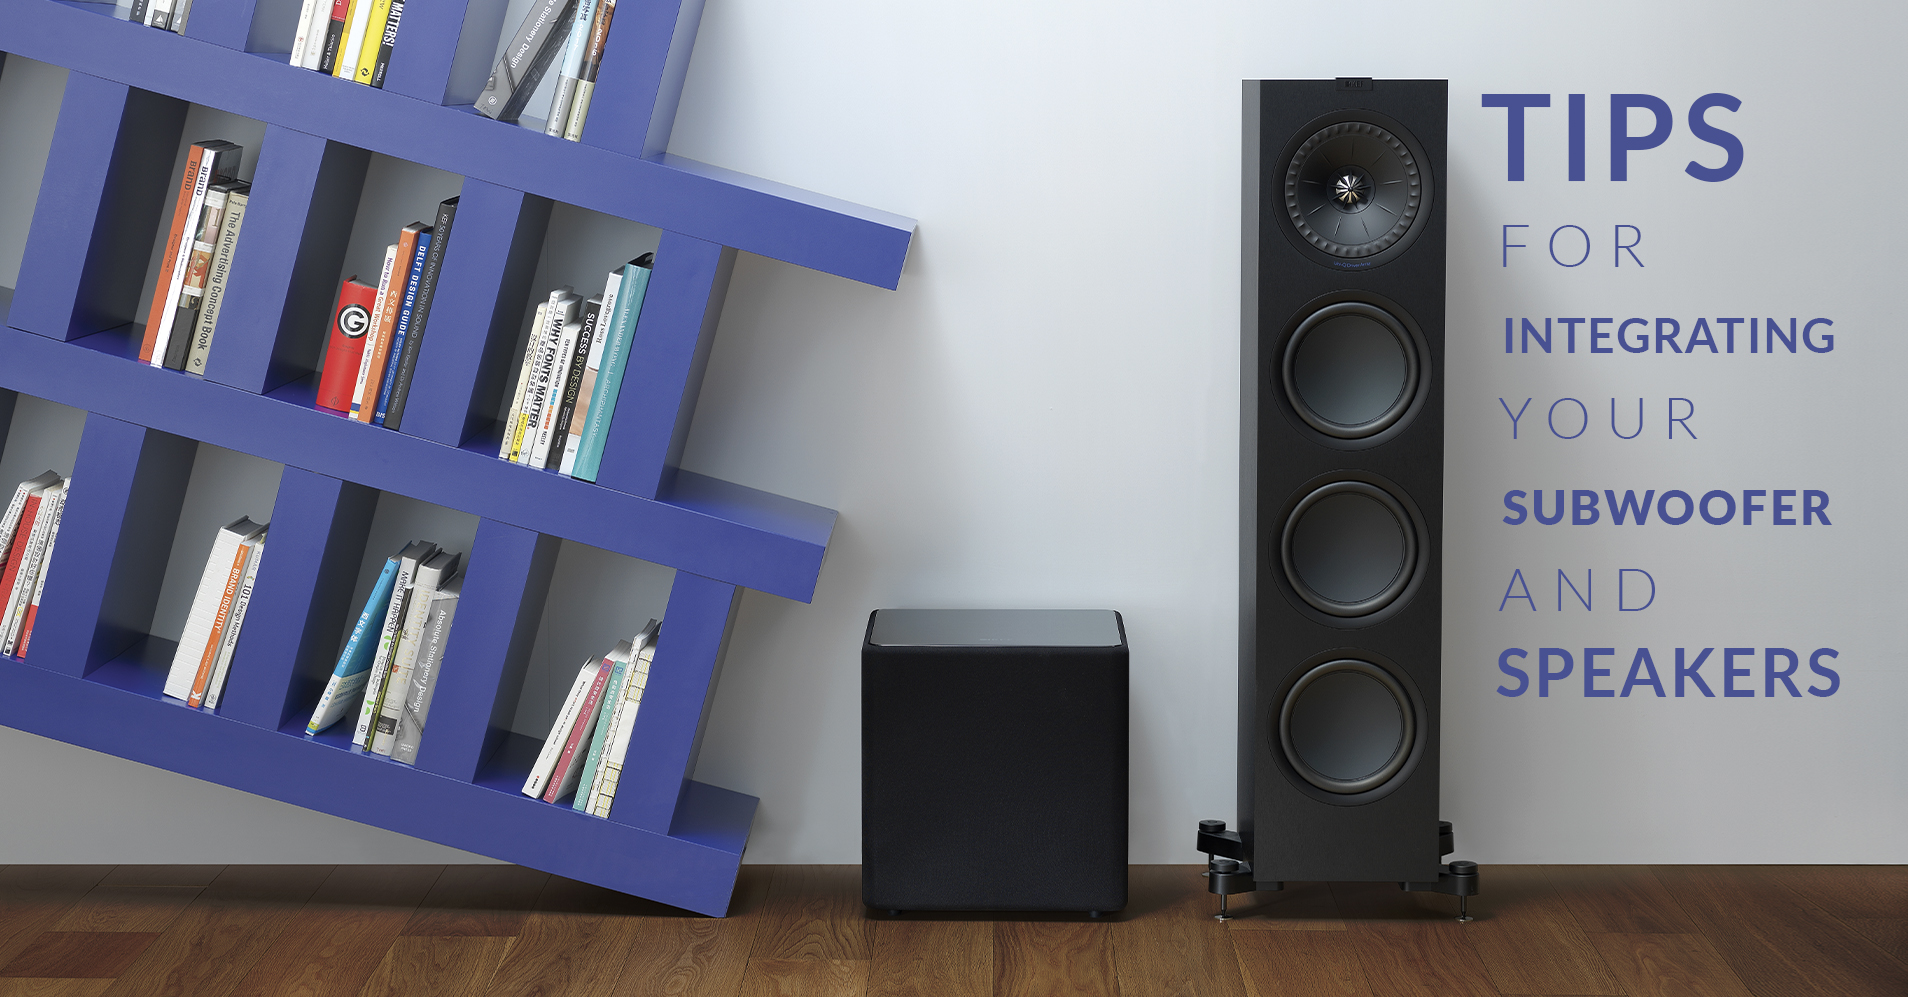 Tips For Integrating Your Speakers and Subwoofer